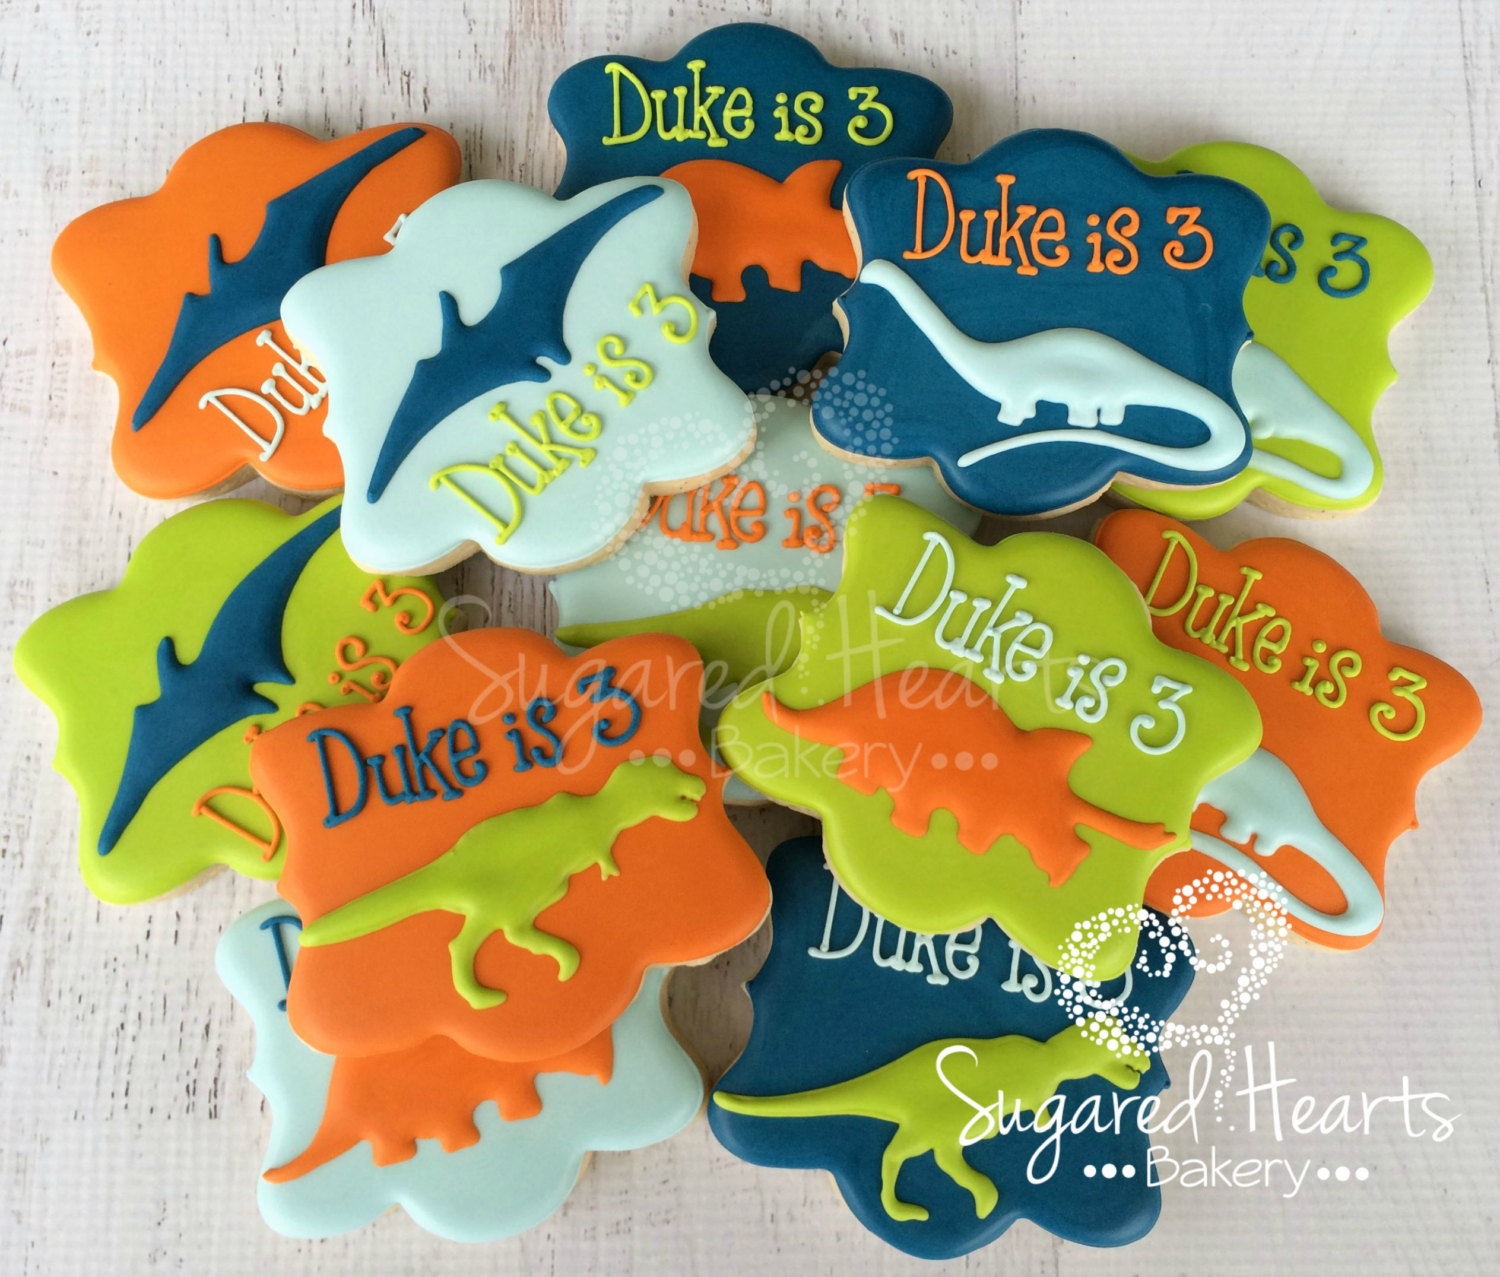 Dinosaur Party Ideas by a Professional Party Planner